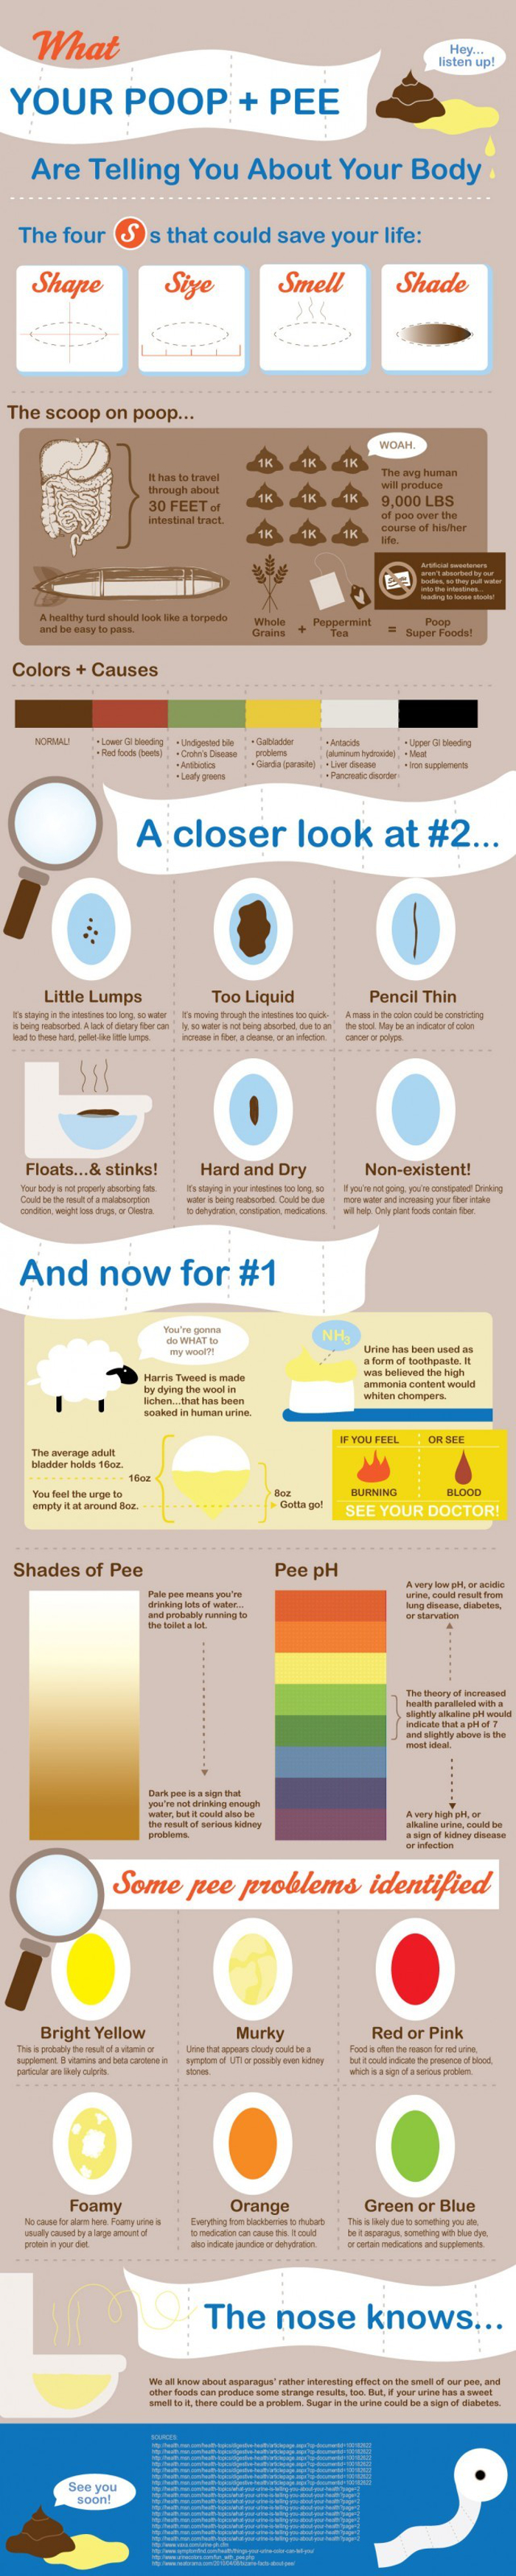 What Your Poop & Pee Are Telling You About Your Body